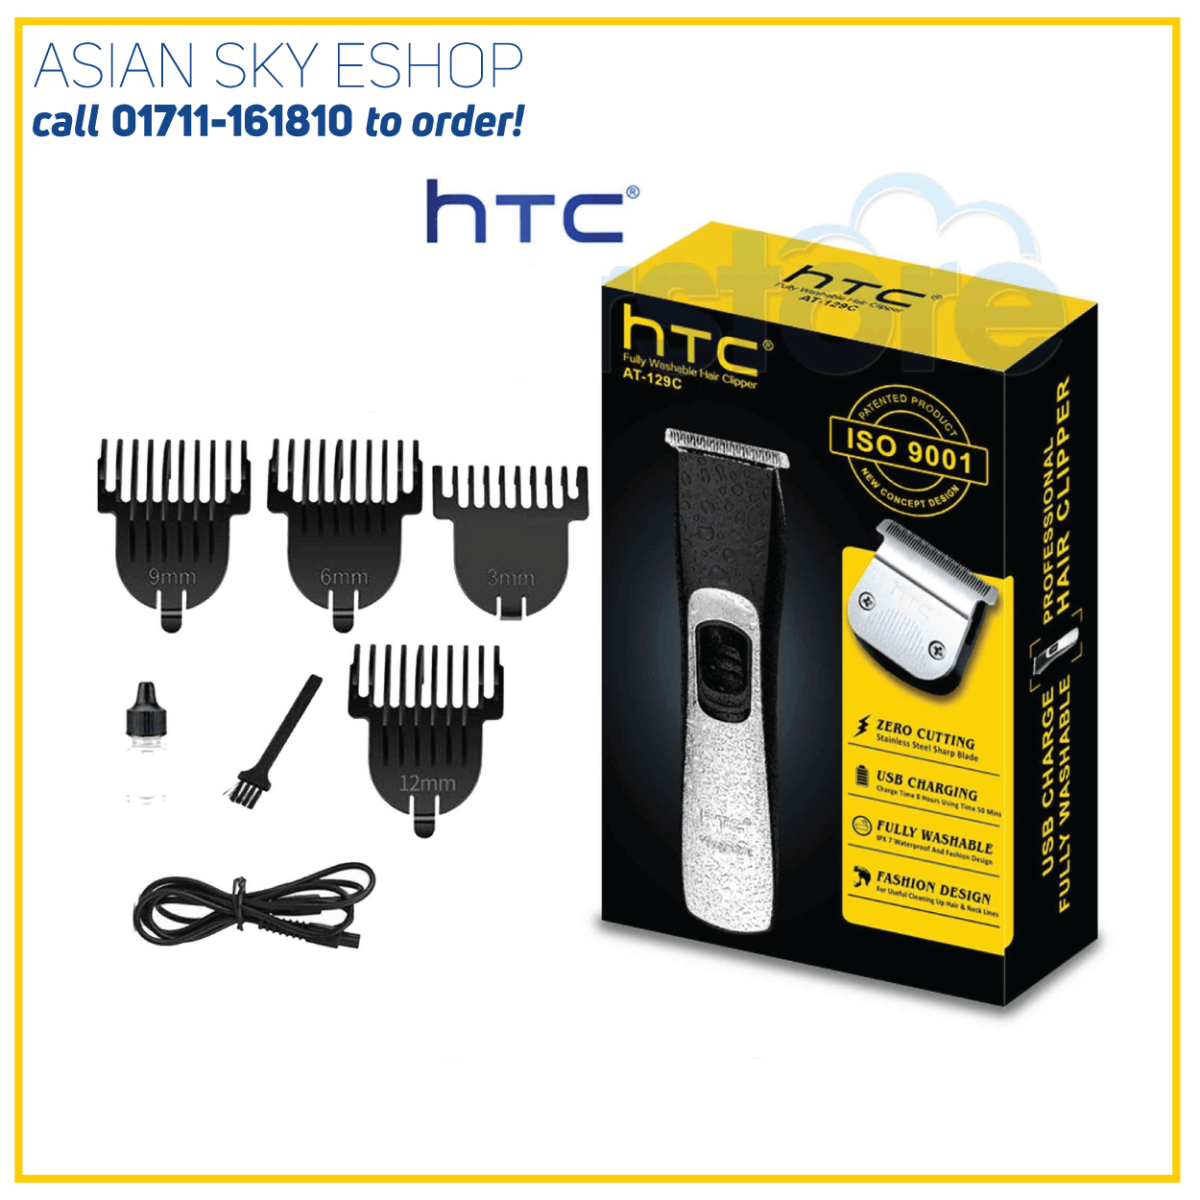 NEW MODEL proffesional HTC AT 129C waterproof hair clipper, hair trimmer , hair cutter for men women kids or family EASY to use 100% ORIGINAL [ FAST DELIVERY